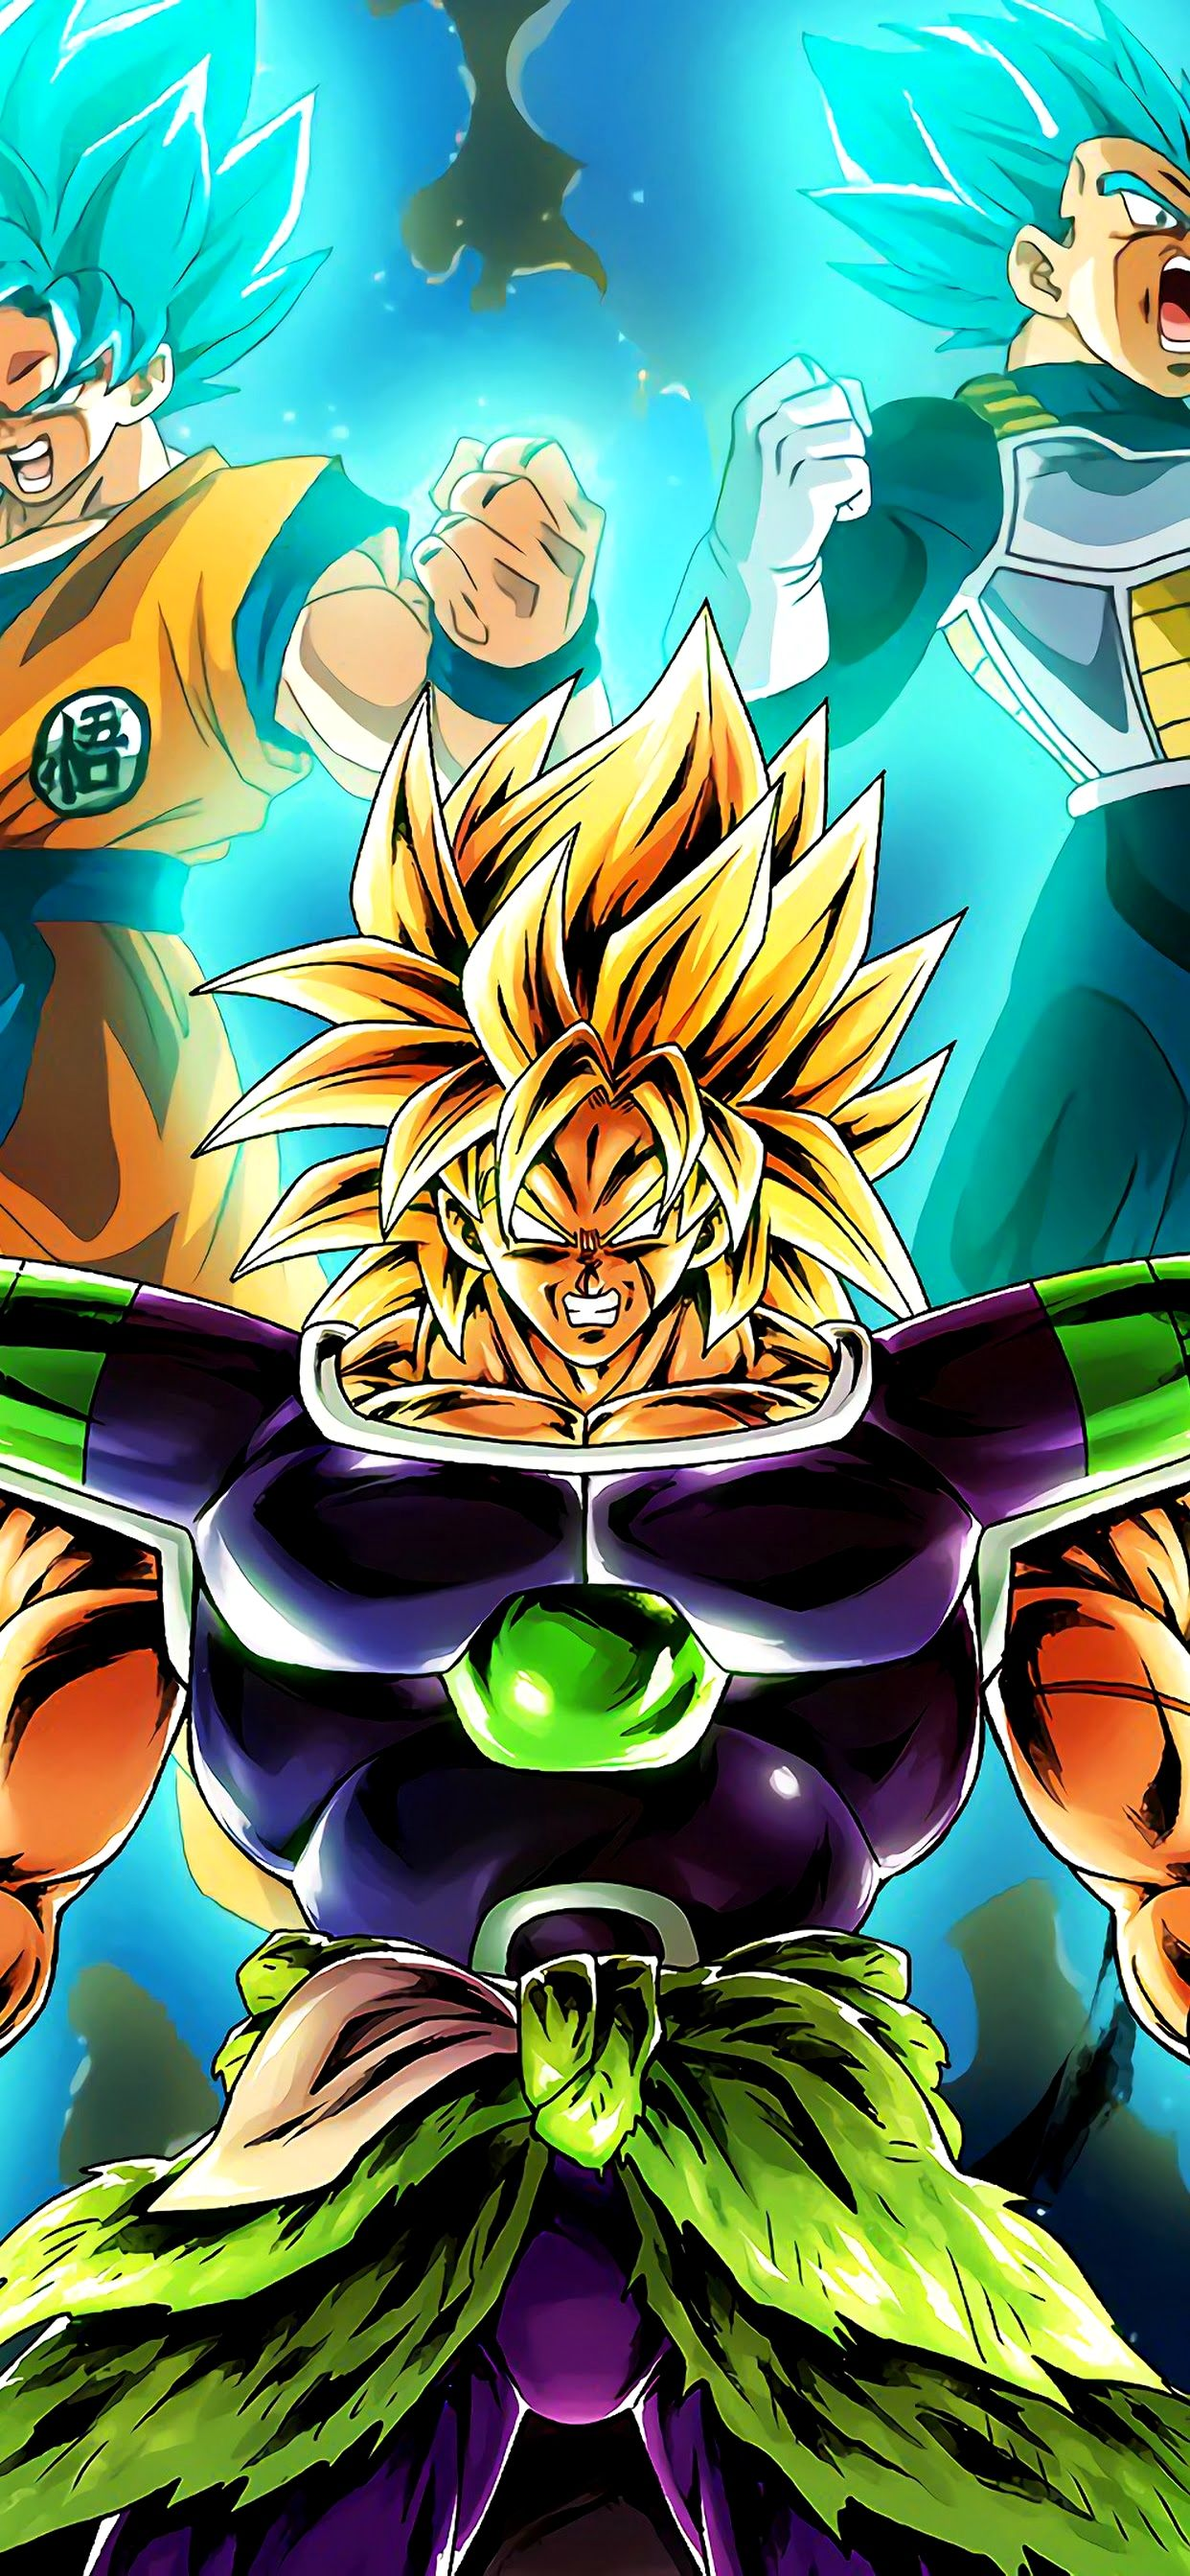 Broly Wallpaper 4k Iphone Ideas Di 2020 Fotografi